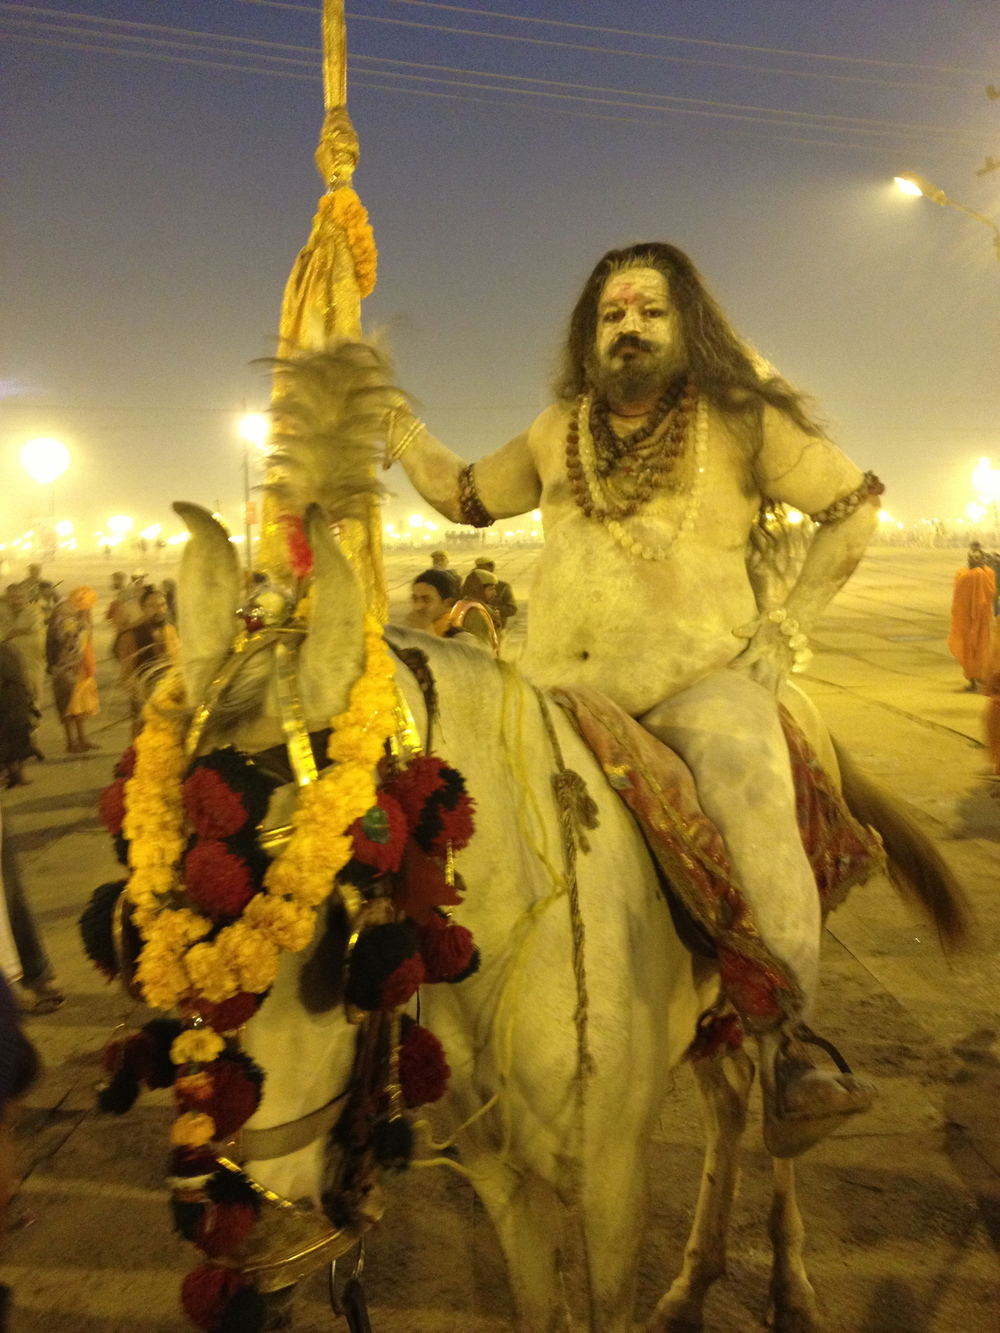 One of the Naga Sadhus parading down to the Sangam to bathe on the new moon